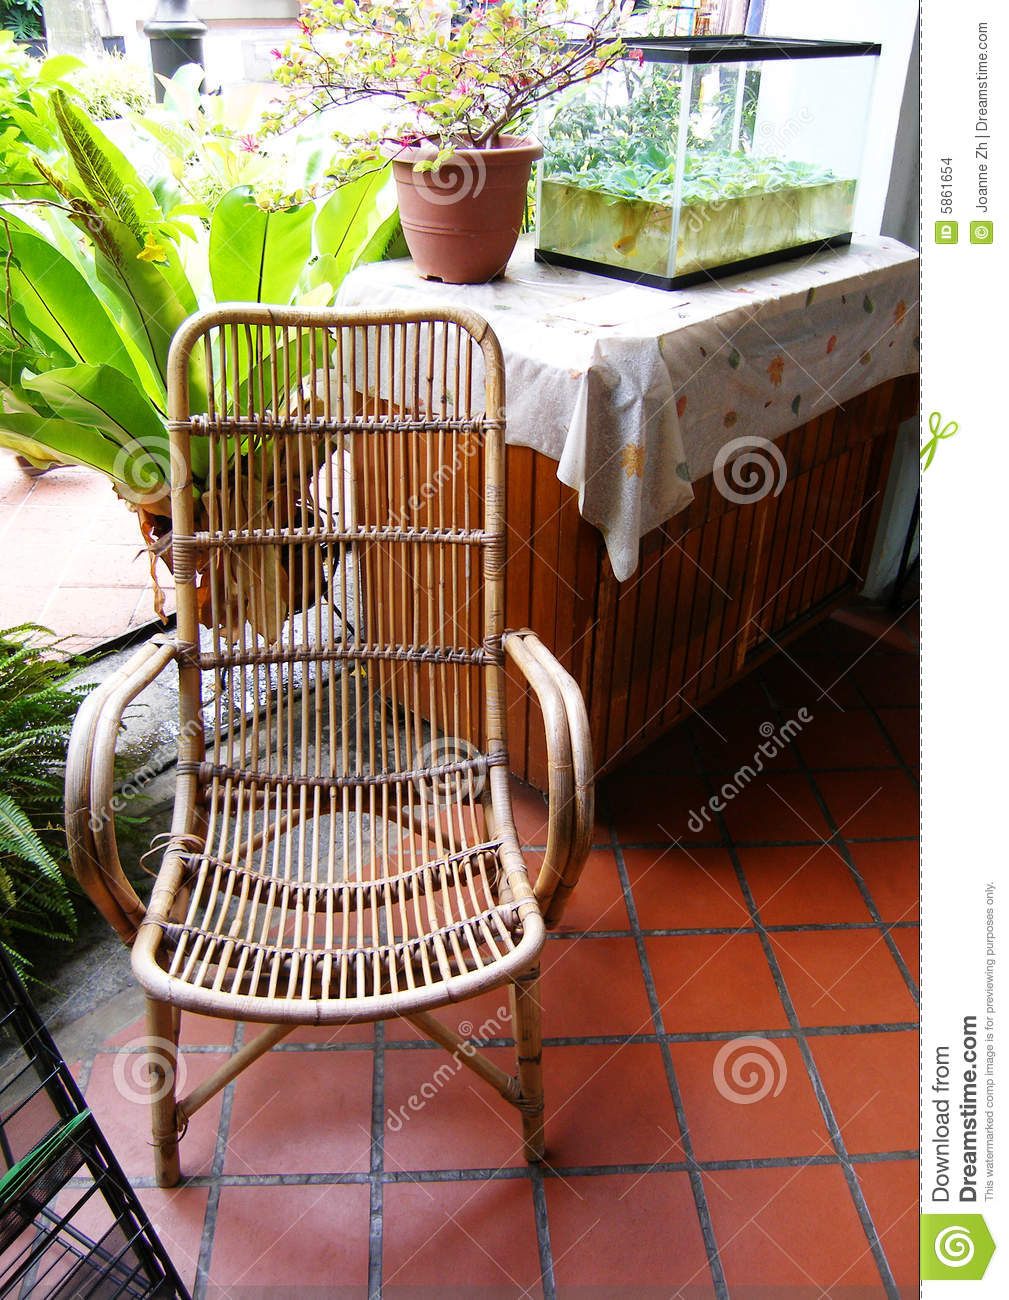 Outdoor Cane Furniture Stock Images - Image: 5861654